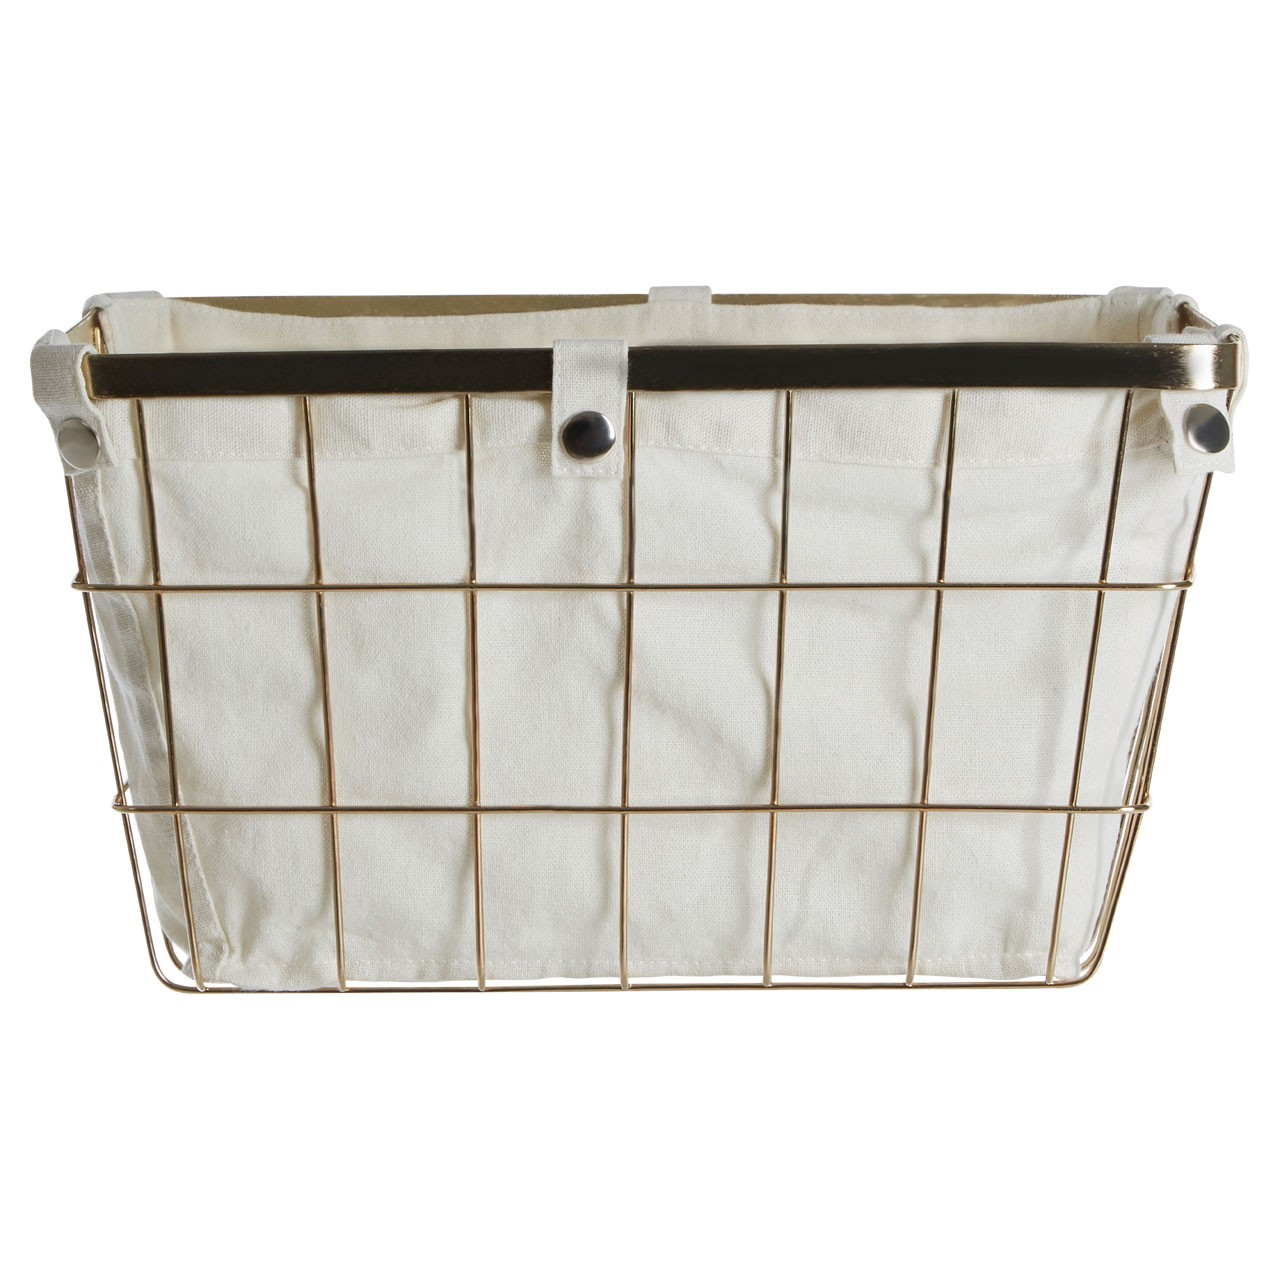 Prime Furnishing Rectangle Storage Basket - Gold plated Wire